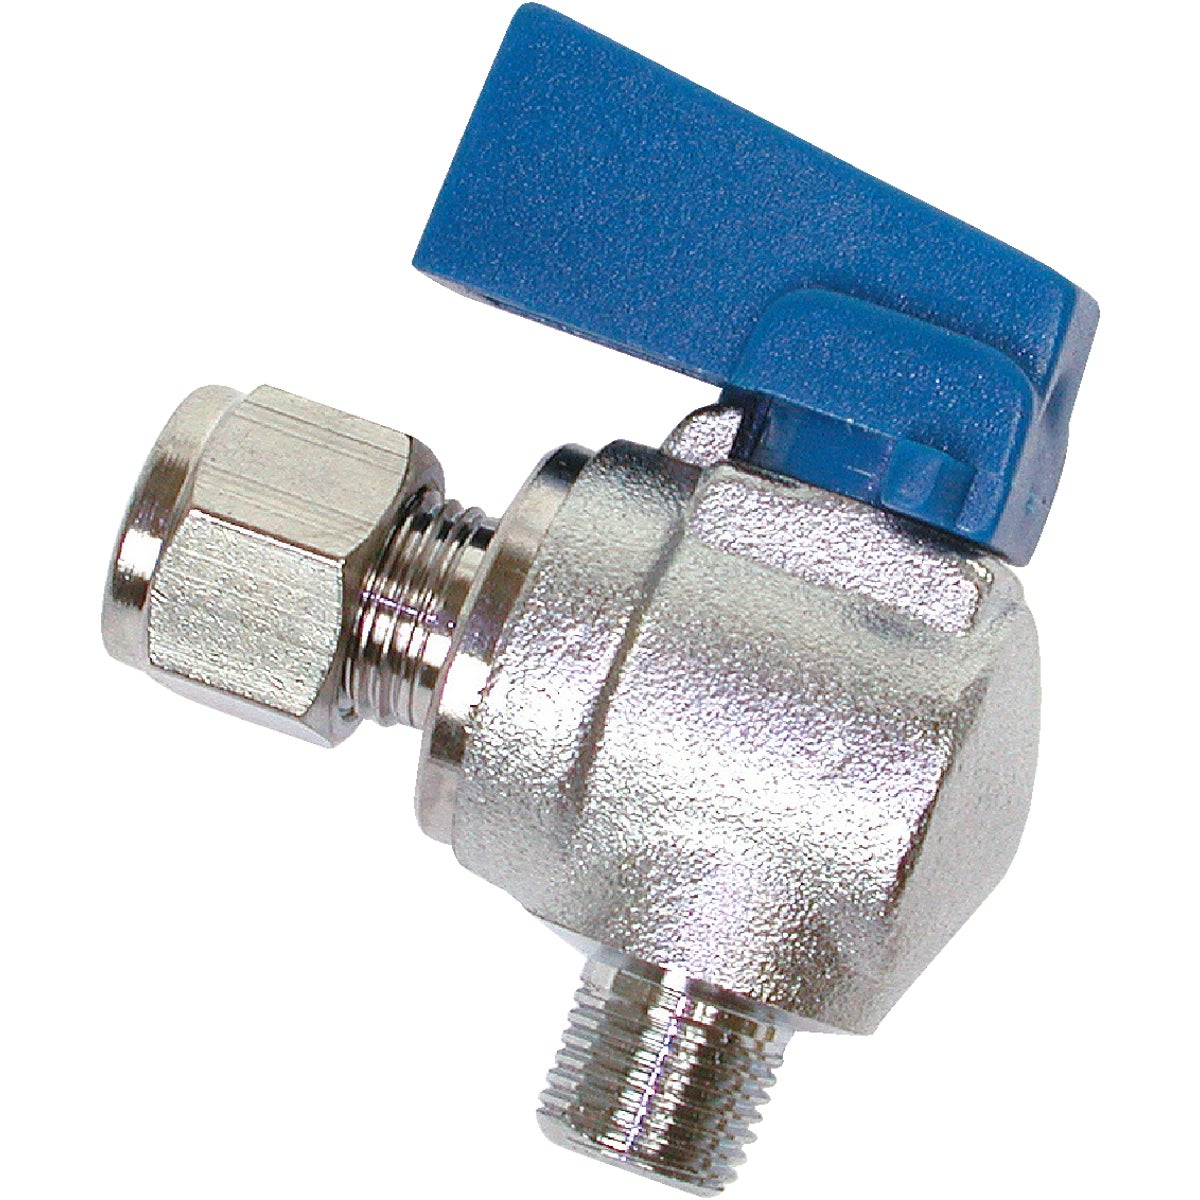 SS ANGLE VALVE - 9443 by Dial Manufacturing